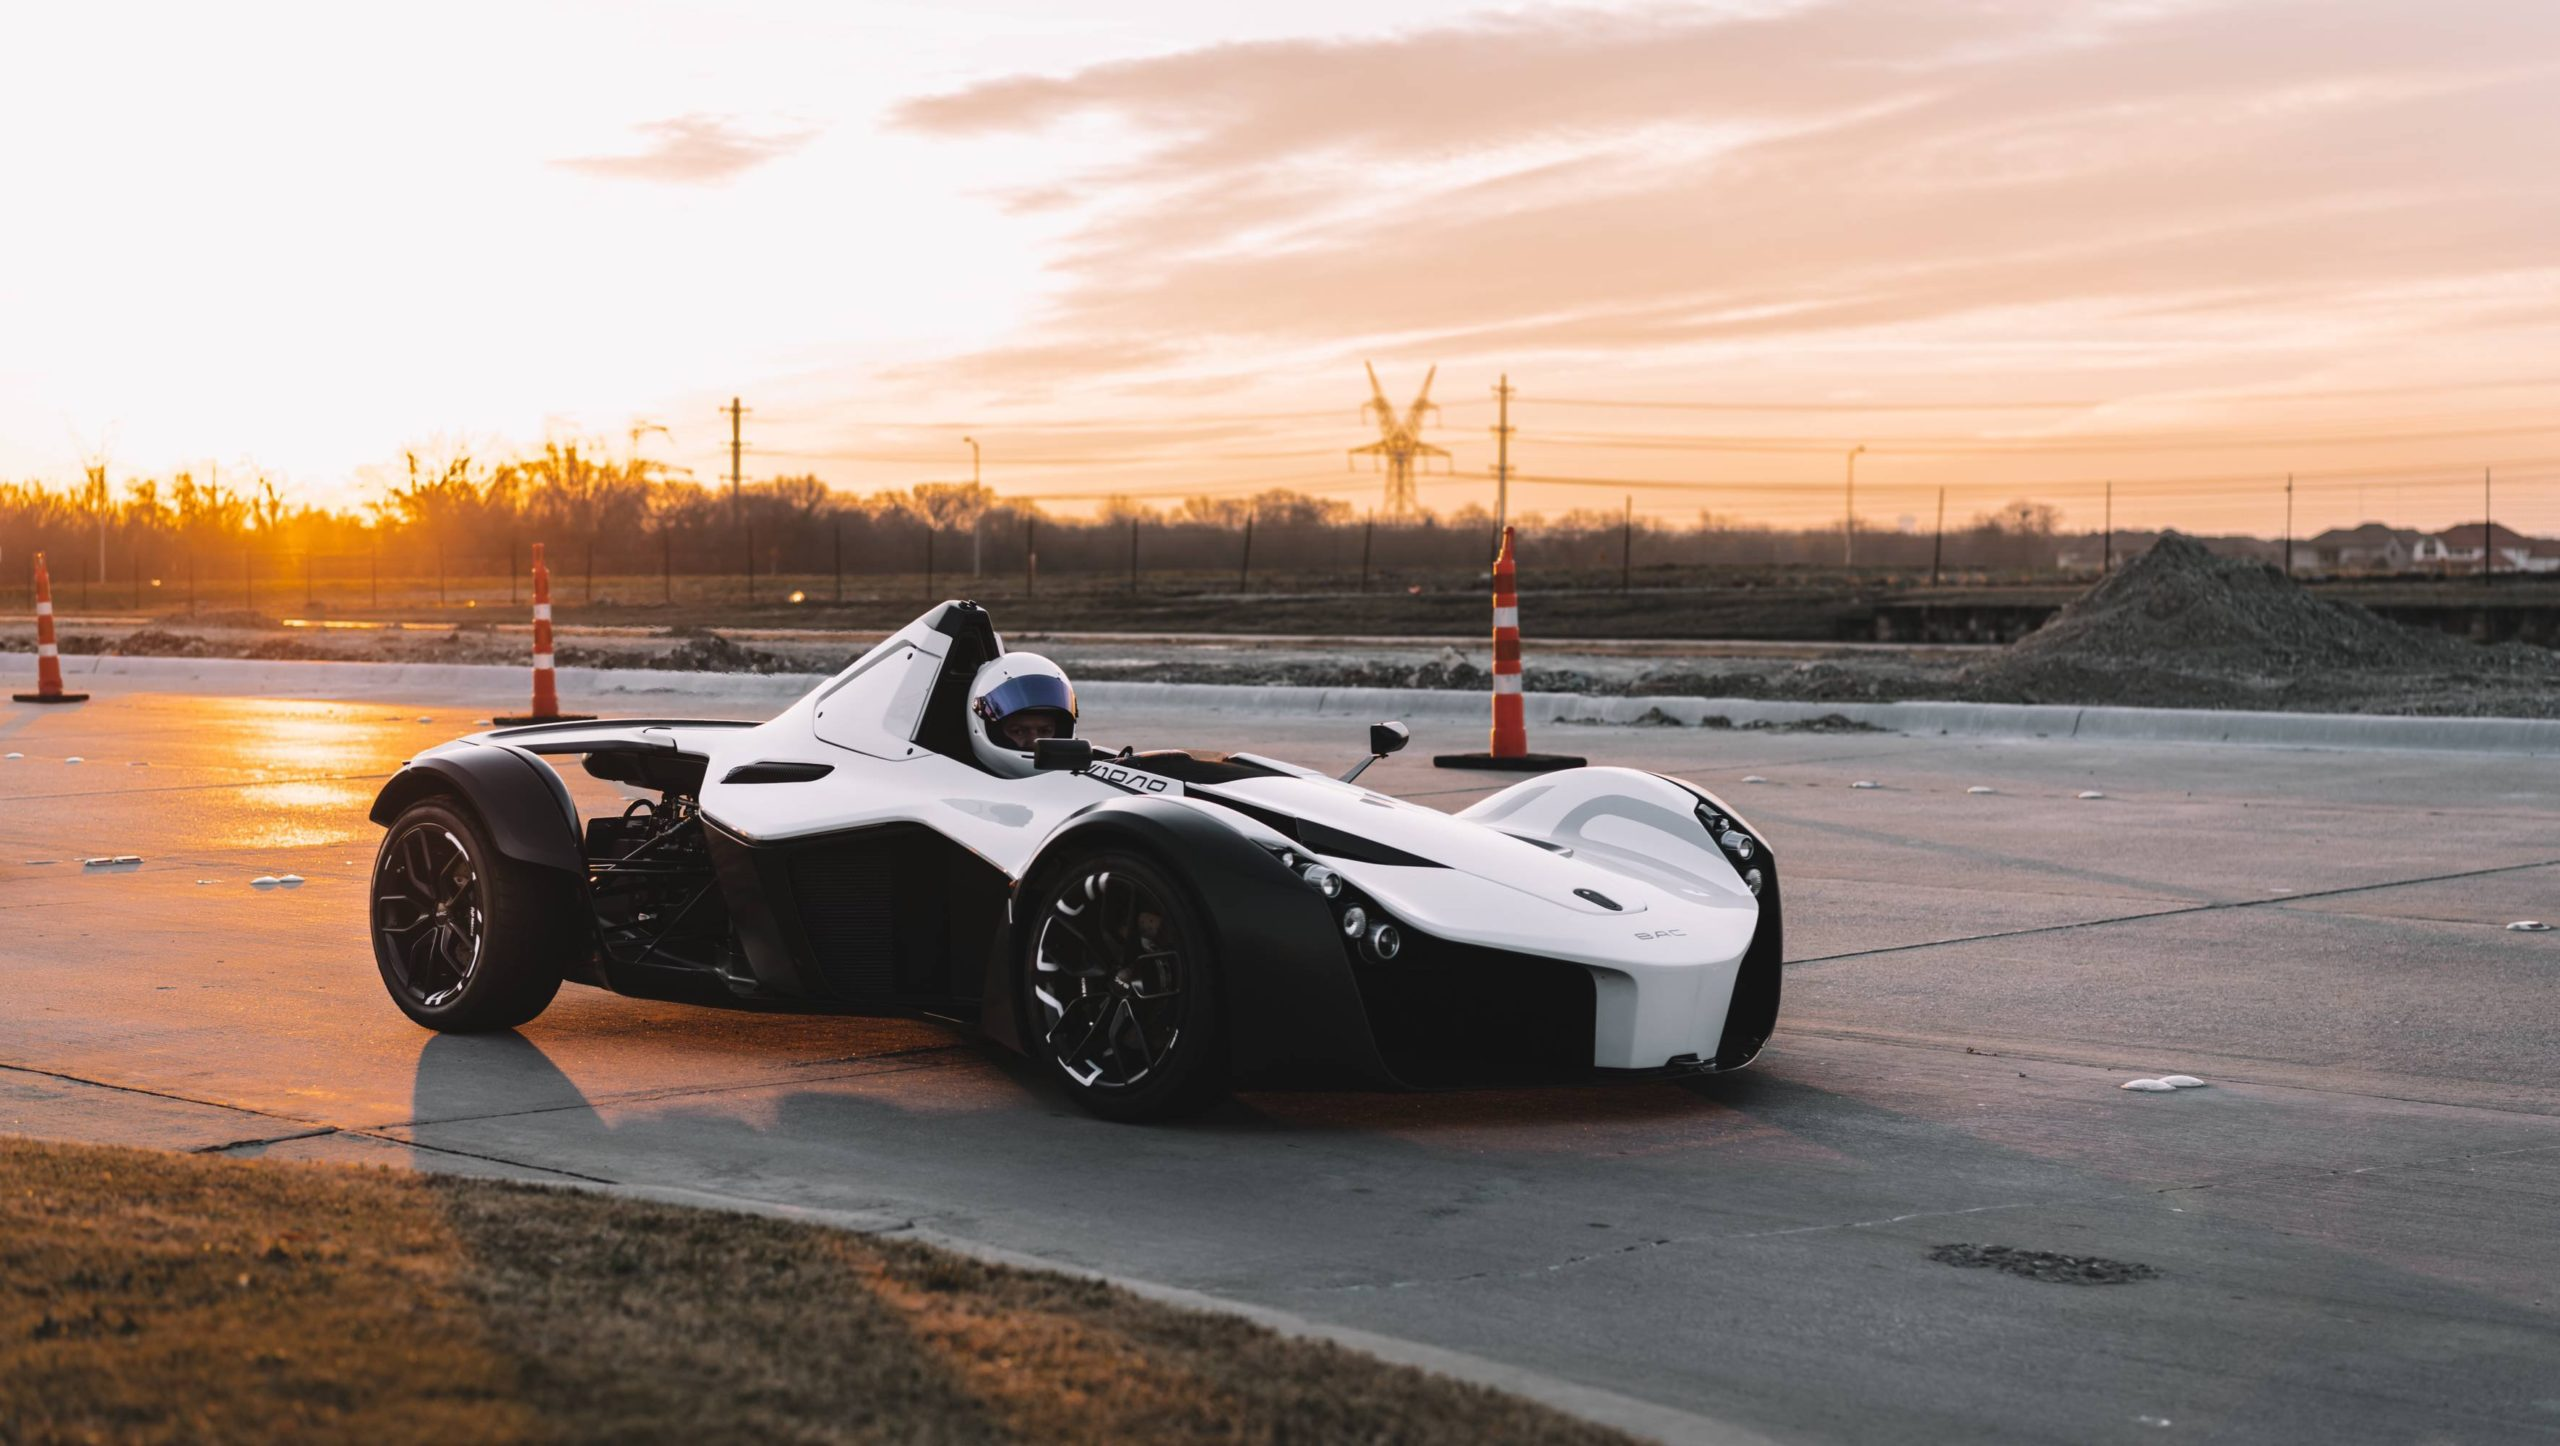 Never thought I'd see a BAC Mono in person. This is from a month or so back but kept forgetting to post it here.